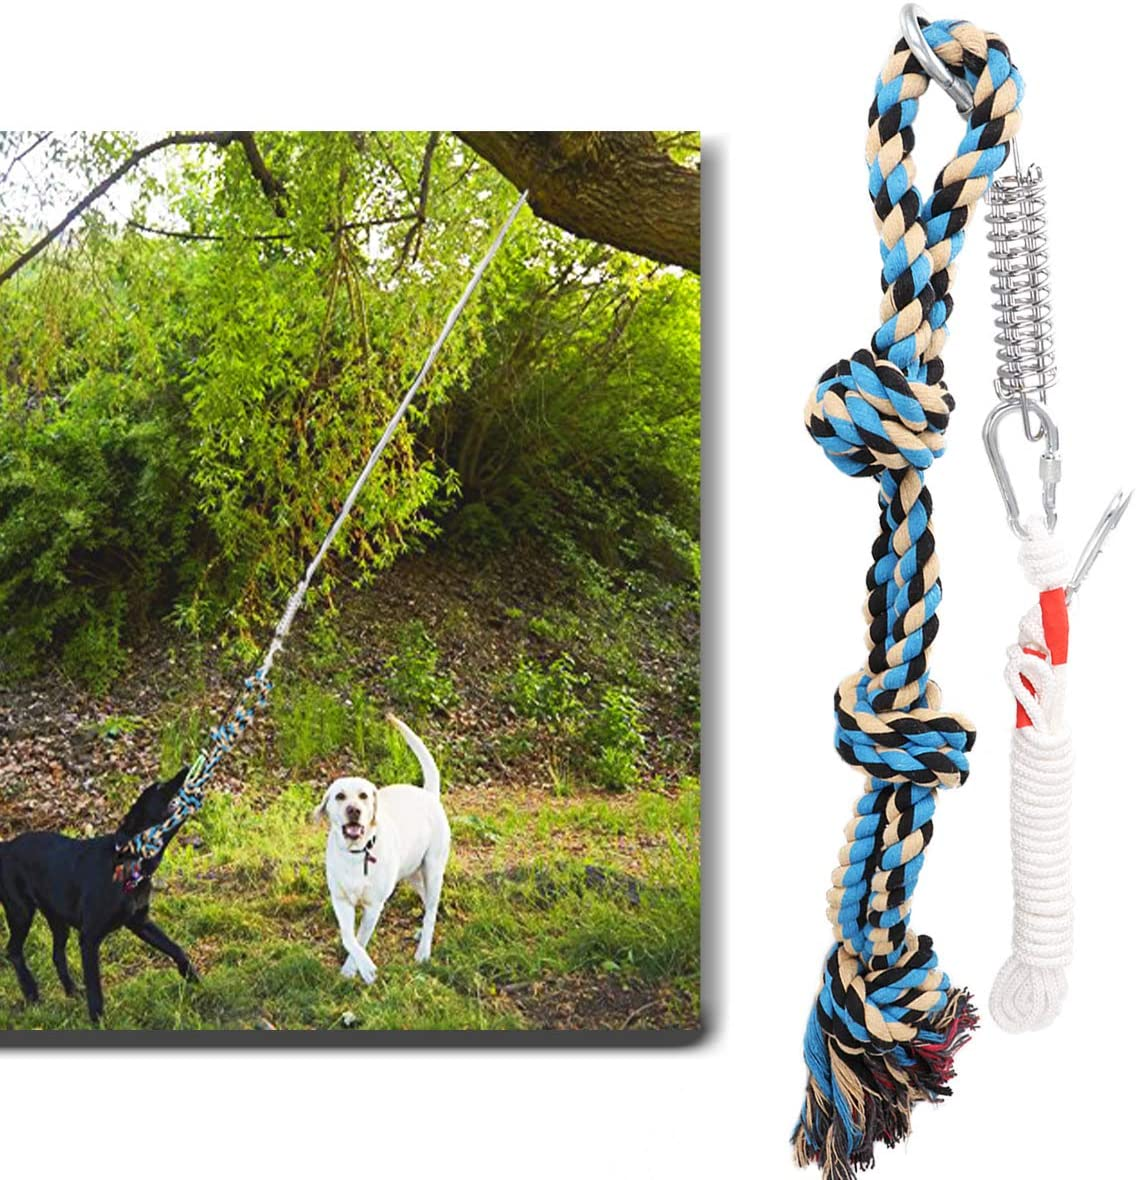 Lovinouse Spring Pole Dog Rope Toy, Strong Tug of War Toys for Pitbull, Medium or Large Dogs, Outdoor Hanging Exercise Play Pull Dog Toys Muscle